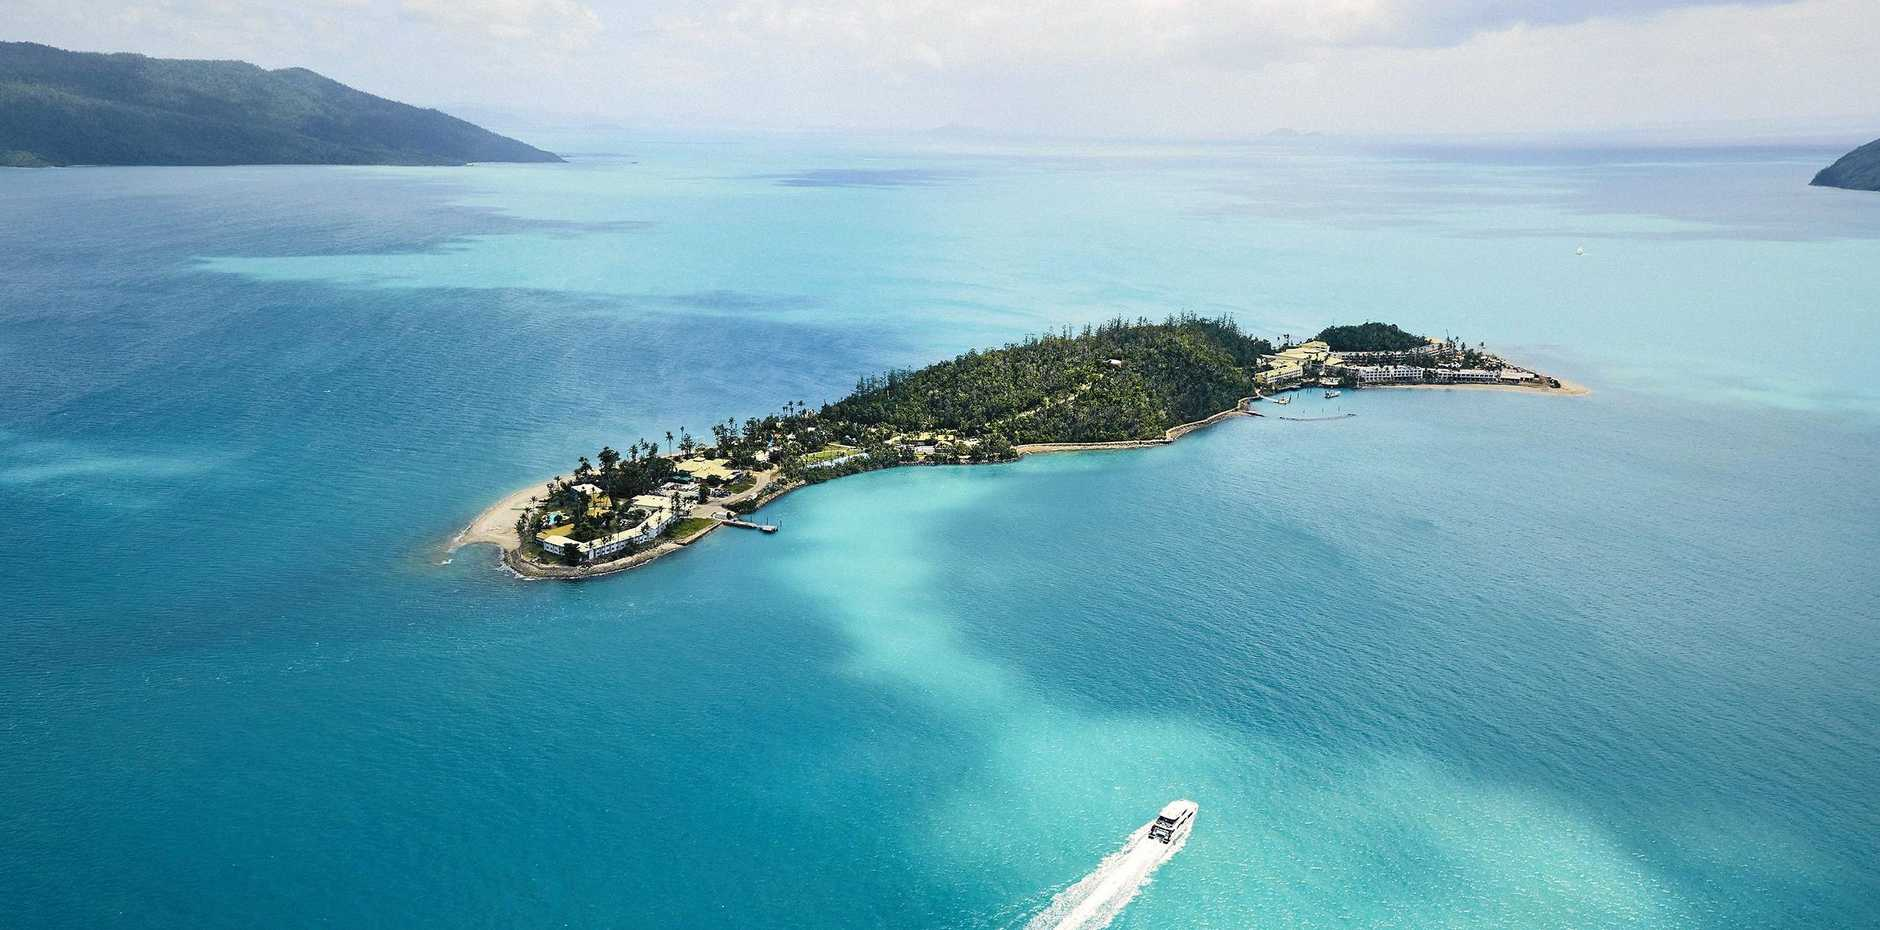 Daydream Island in the Whitsundays is due to reopen in early 2019 after an extensive $100million redevelopment in the wake of Cyclone Debbie.